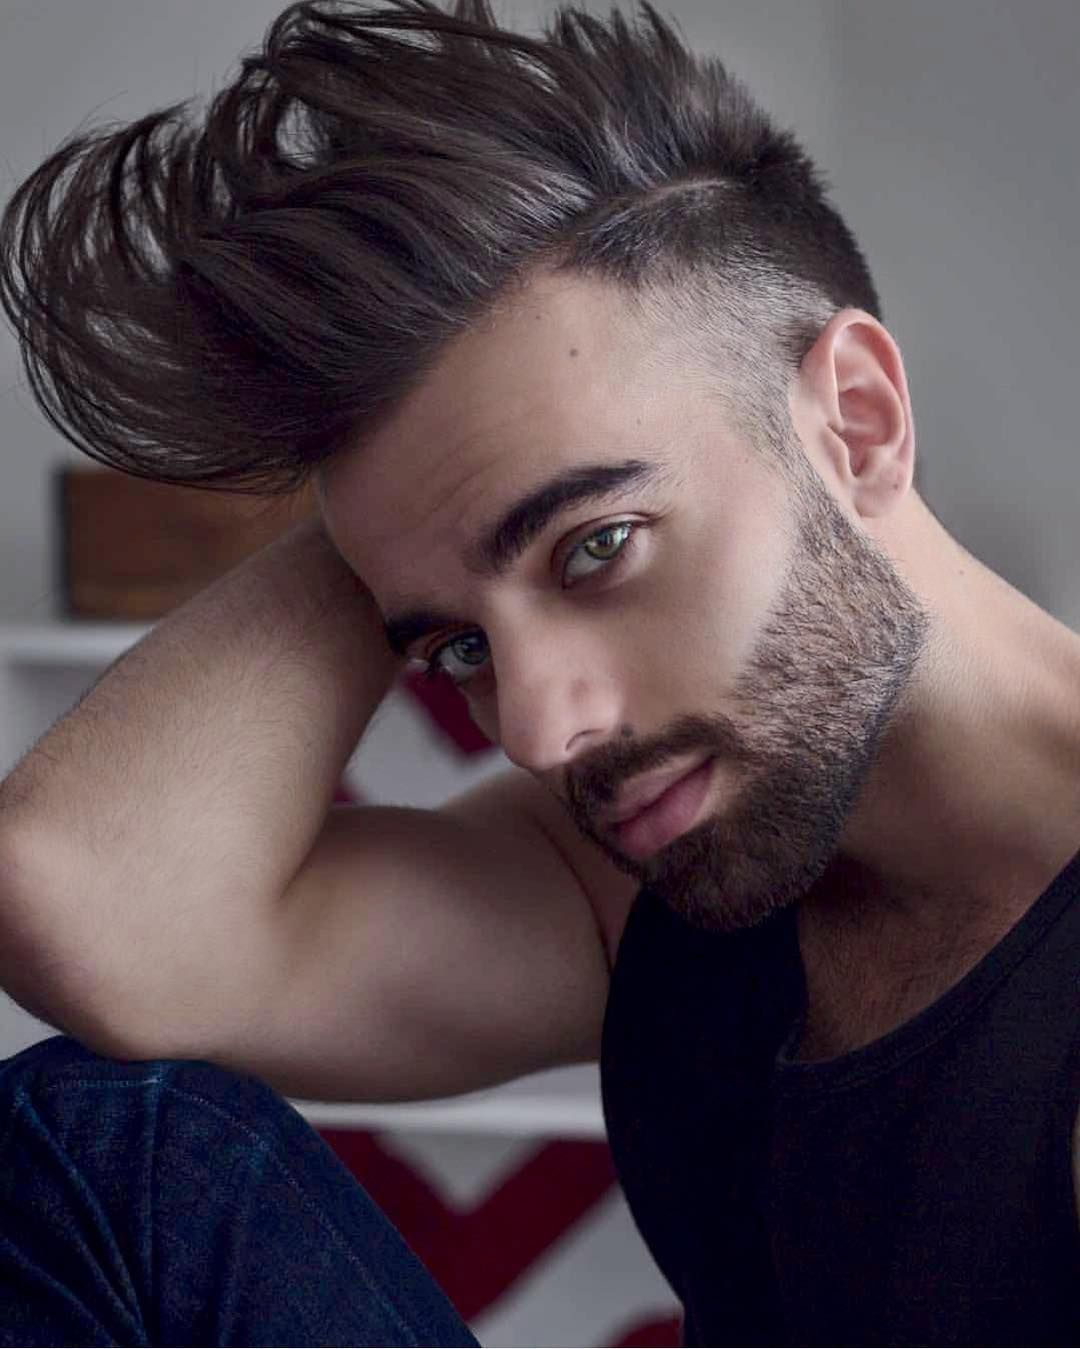 Haircuts for round faces men hairmenstyle official  hairmenstyle u fotos y vídeos de